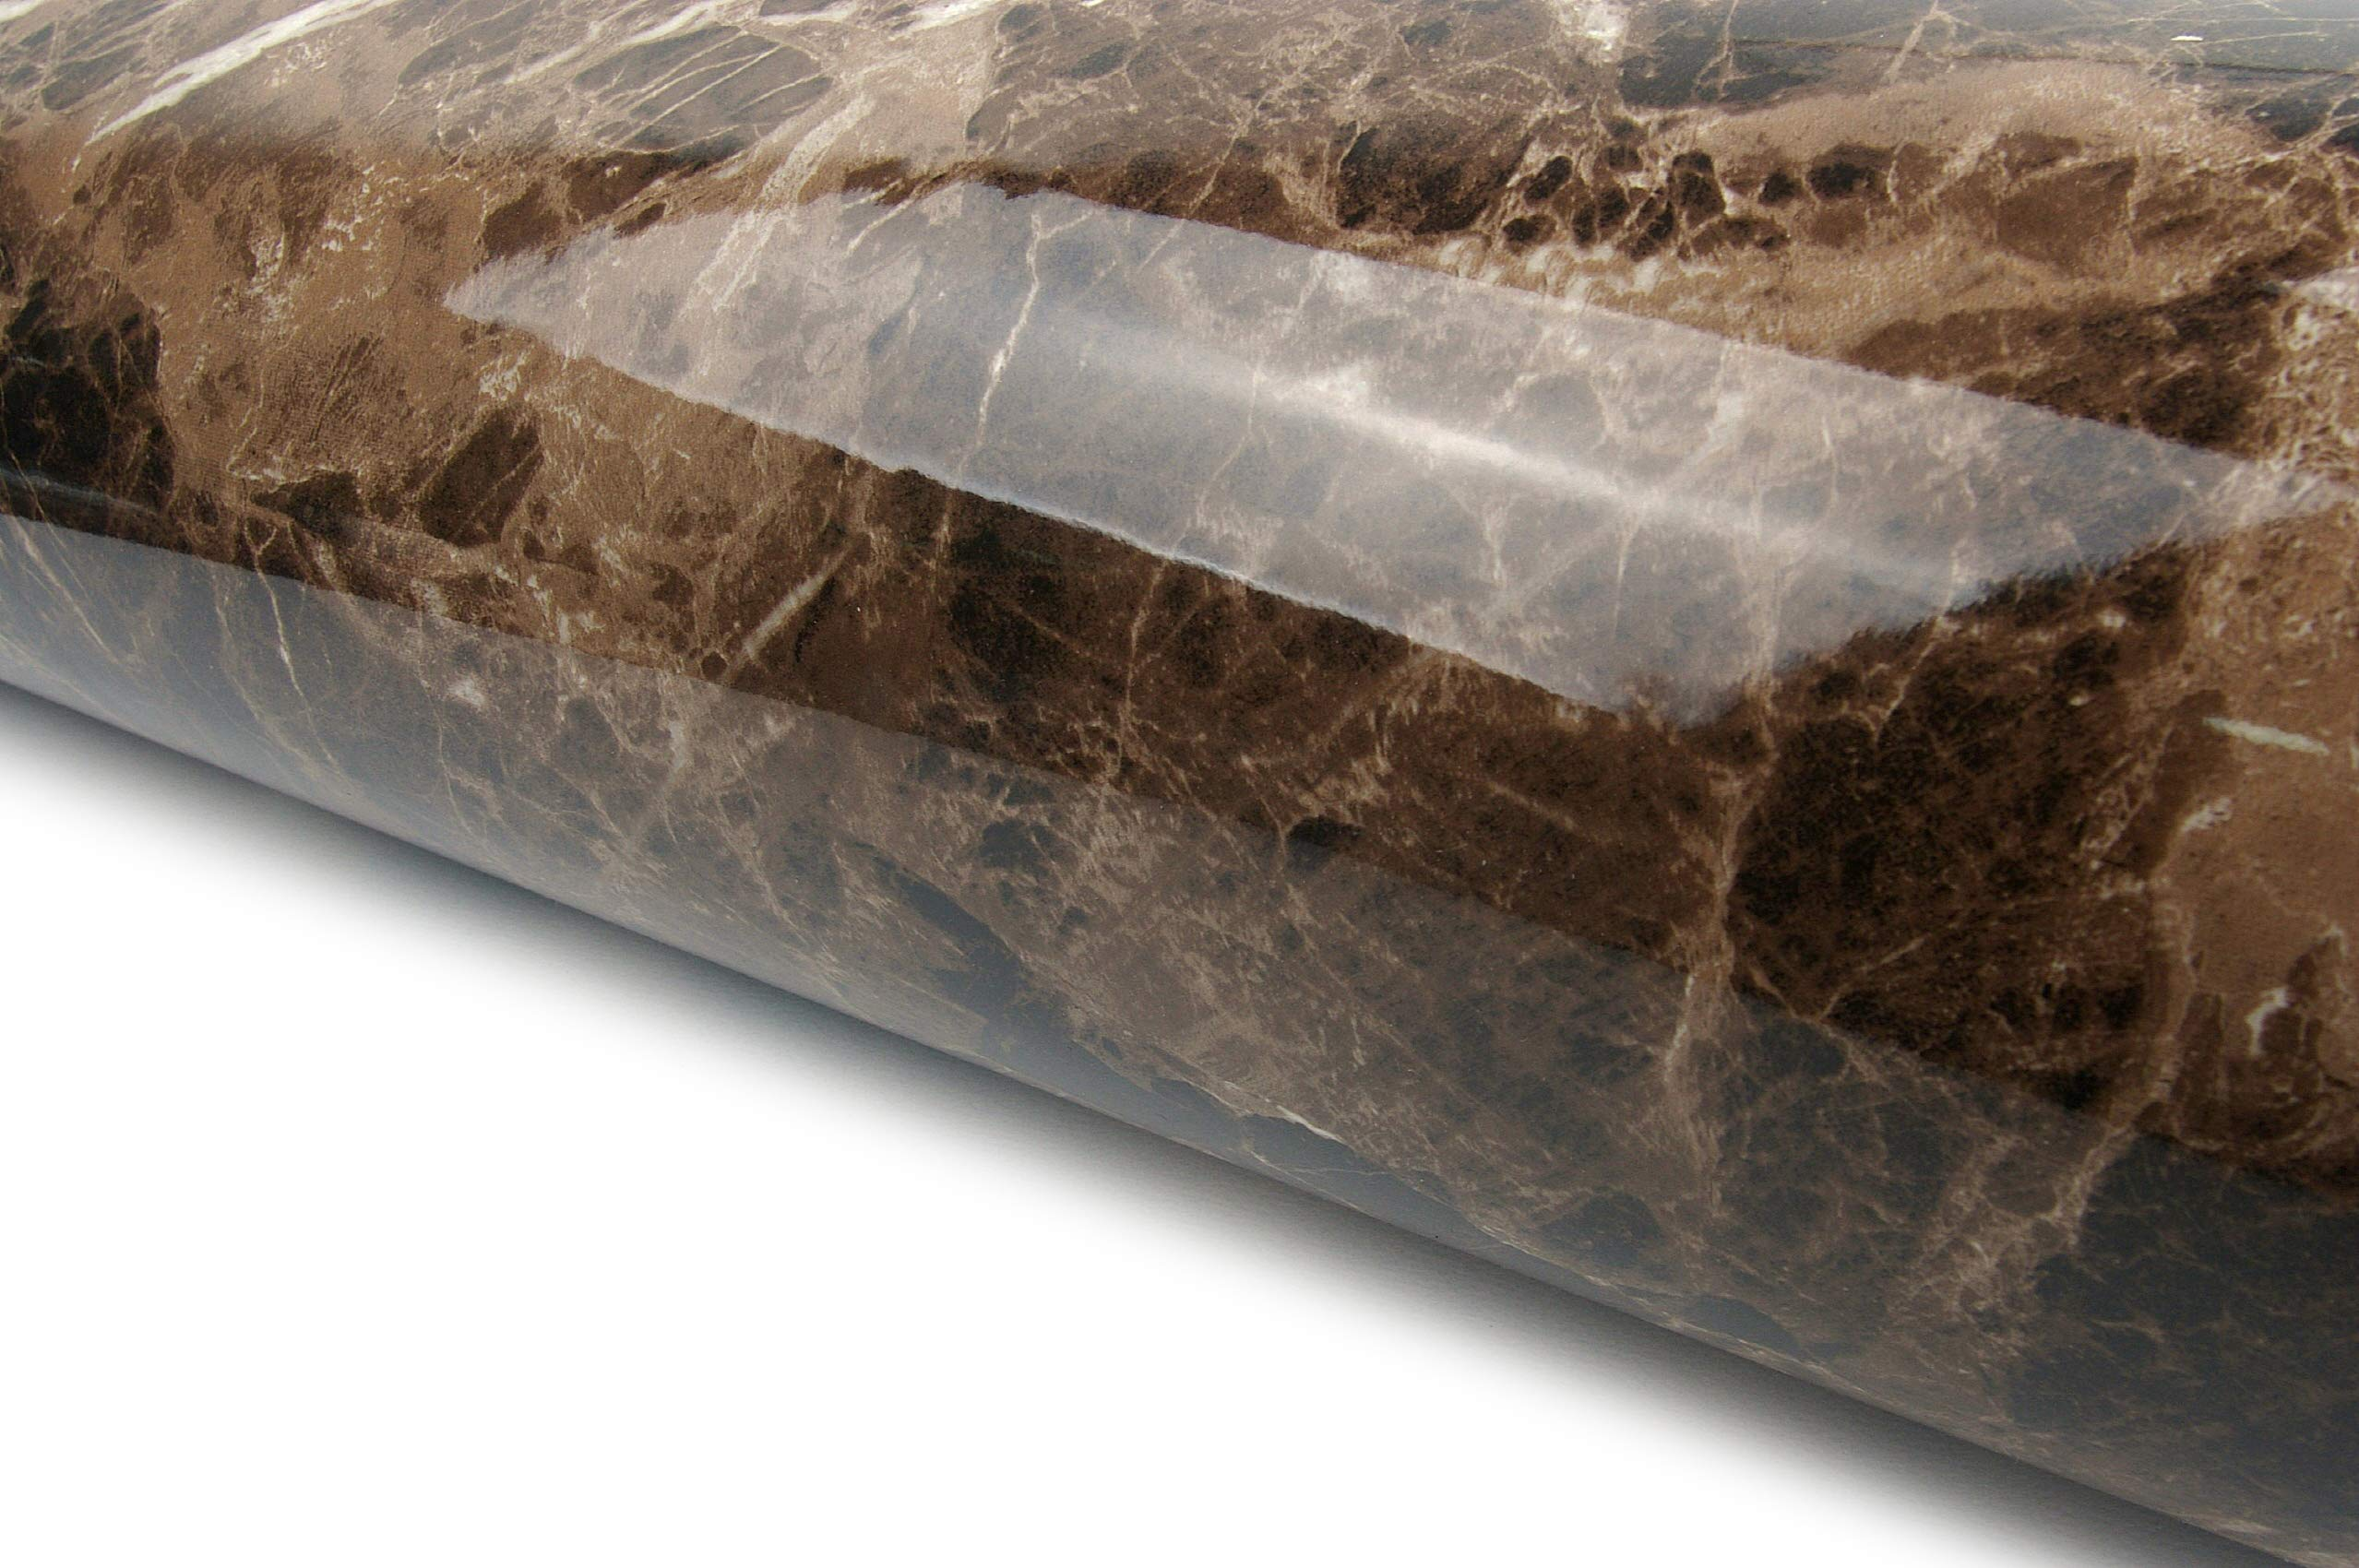 Very Berry Sticker Marble Look Interior Film (Brown, 24'' X 118'' Roll, High Glossy) Granite Effect Vinyl Self Adhesive Peel-Stick Brown Counter Top (2 X 9.84 ft)